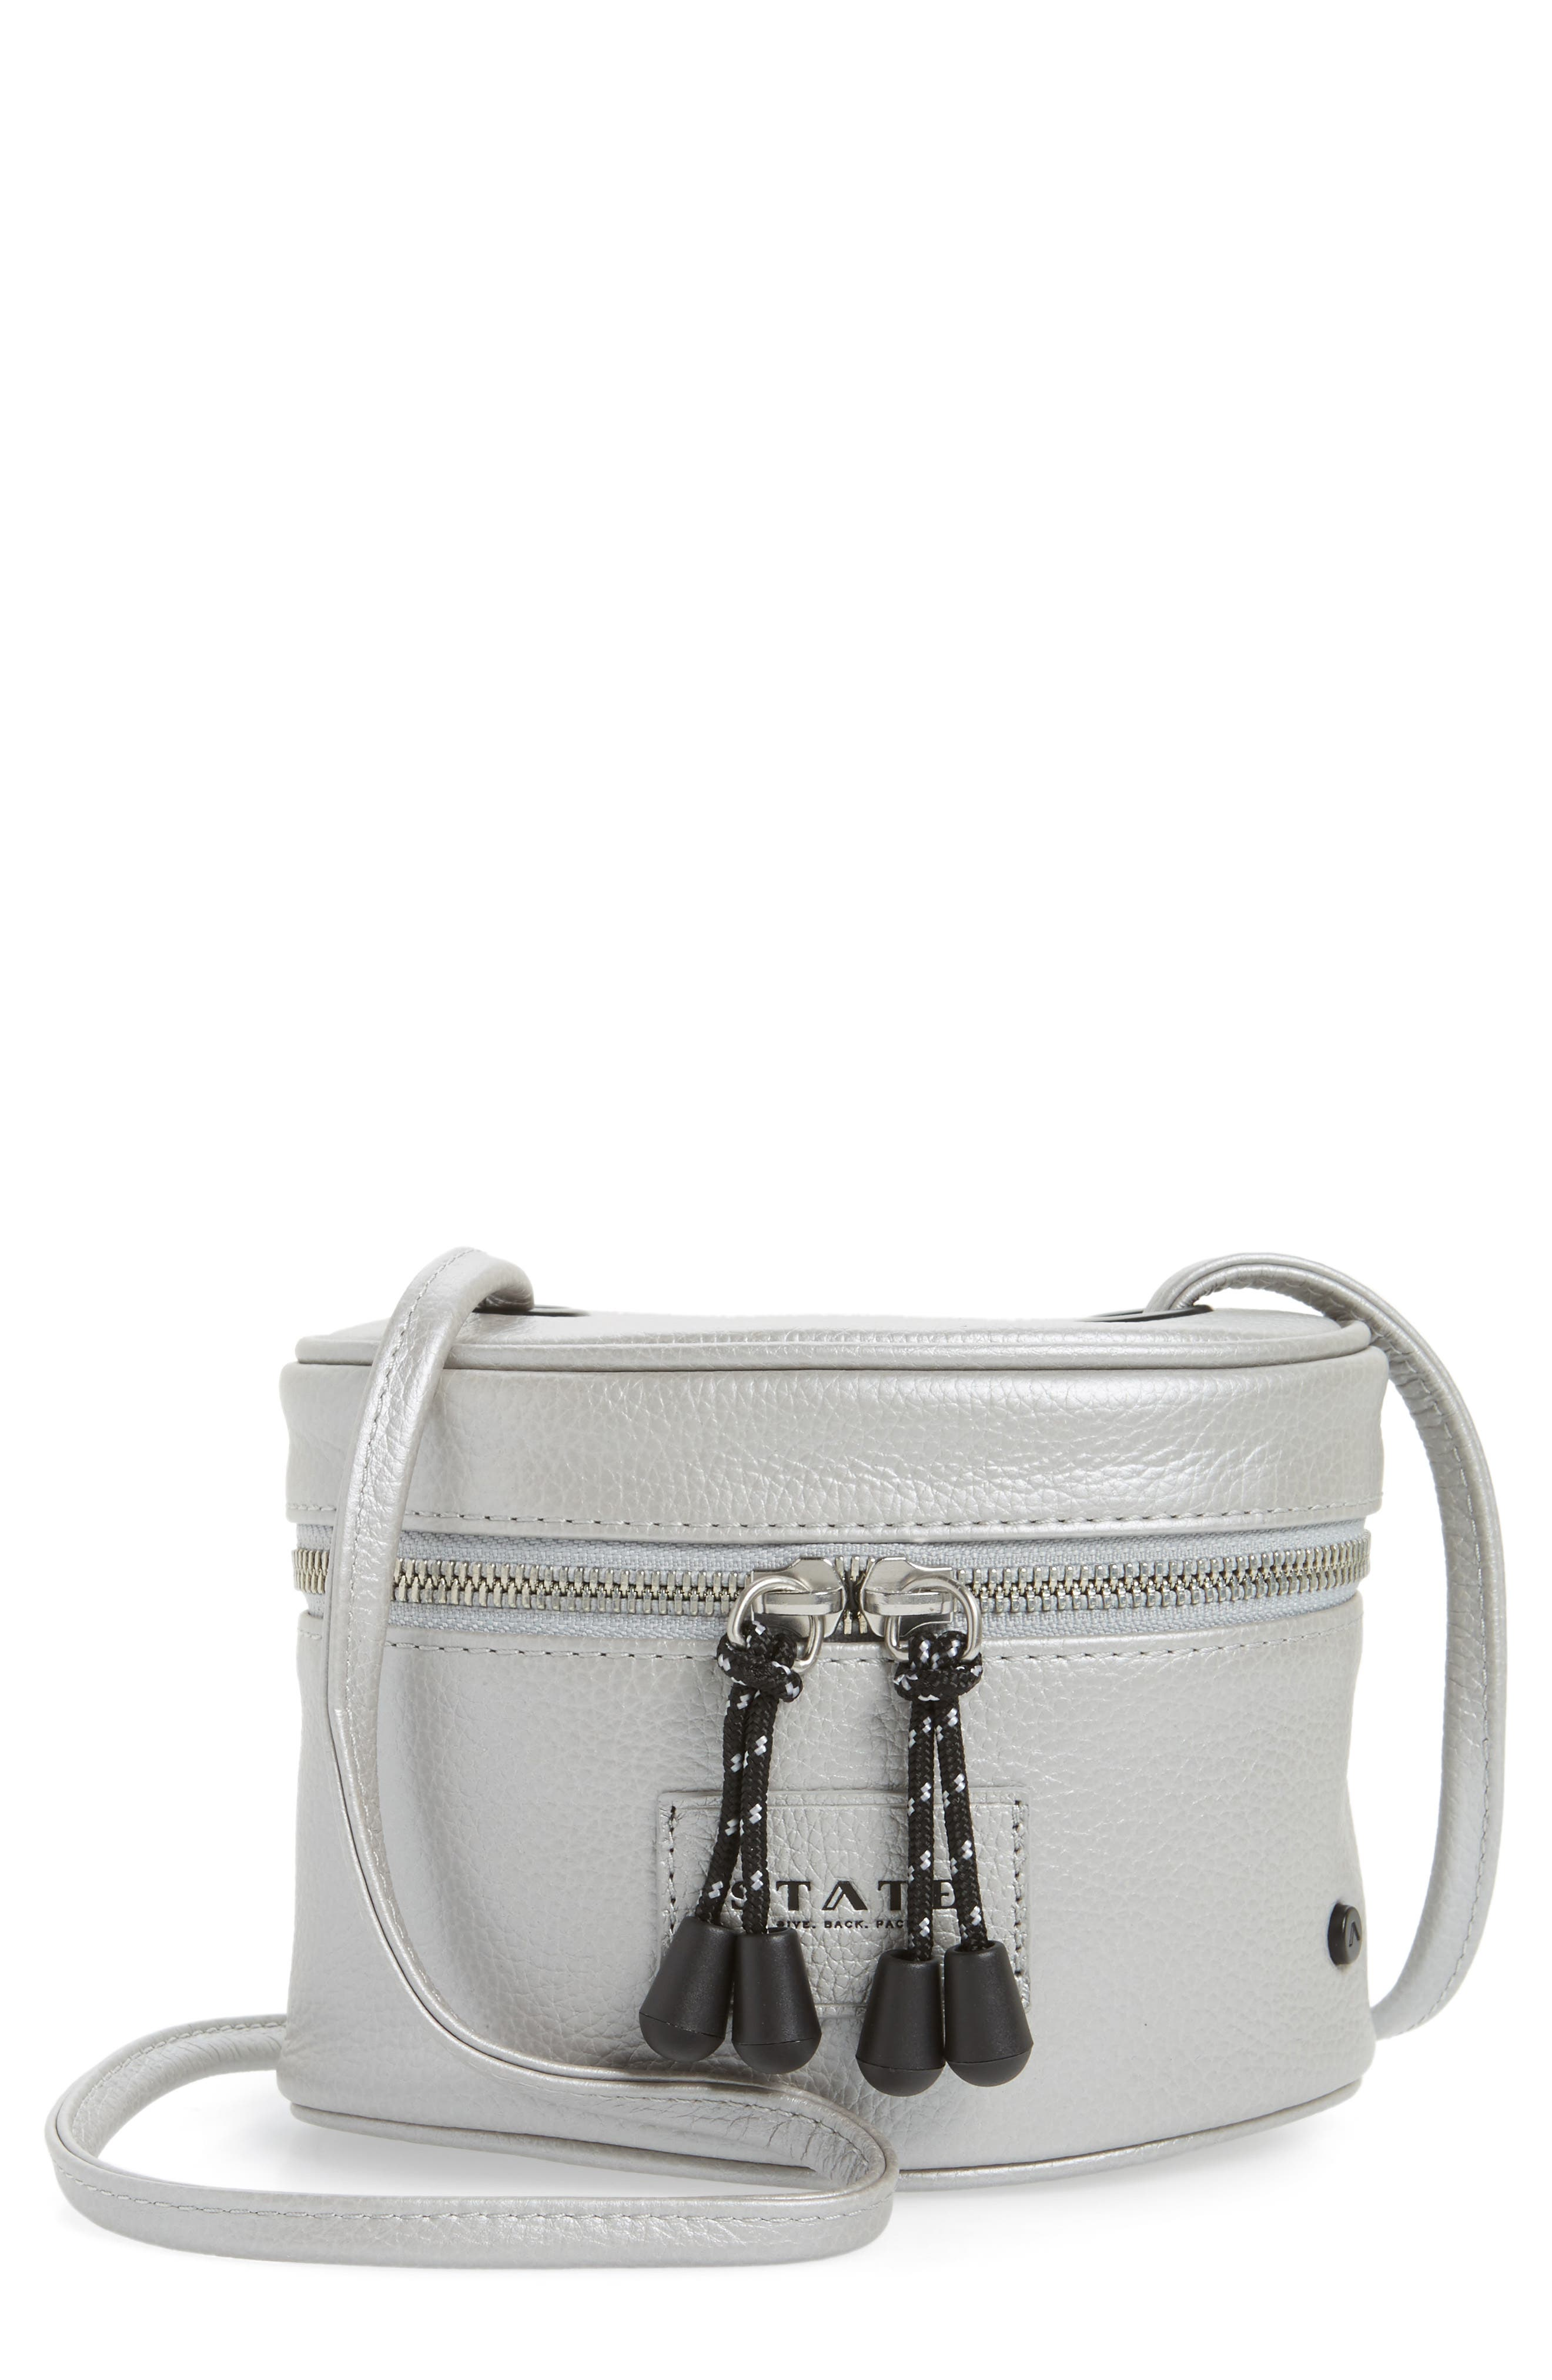 Greenwood Autumn Leather Crossbody Bag,                         Main,                         color, Silver